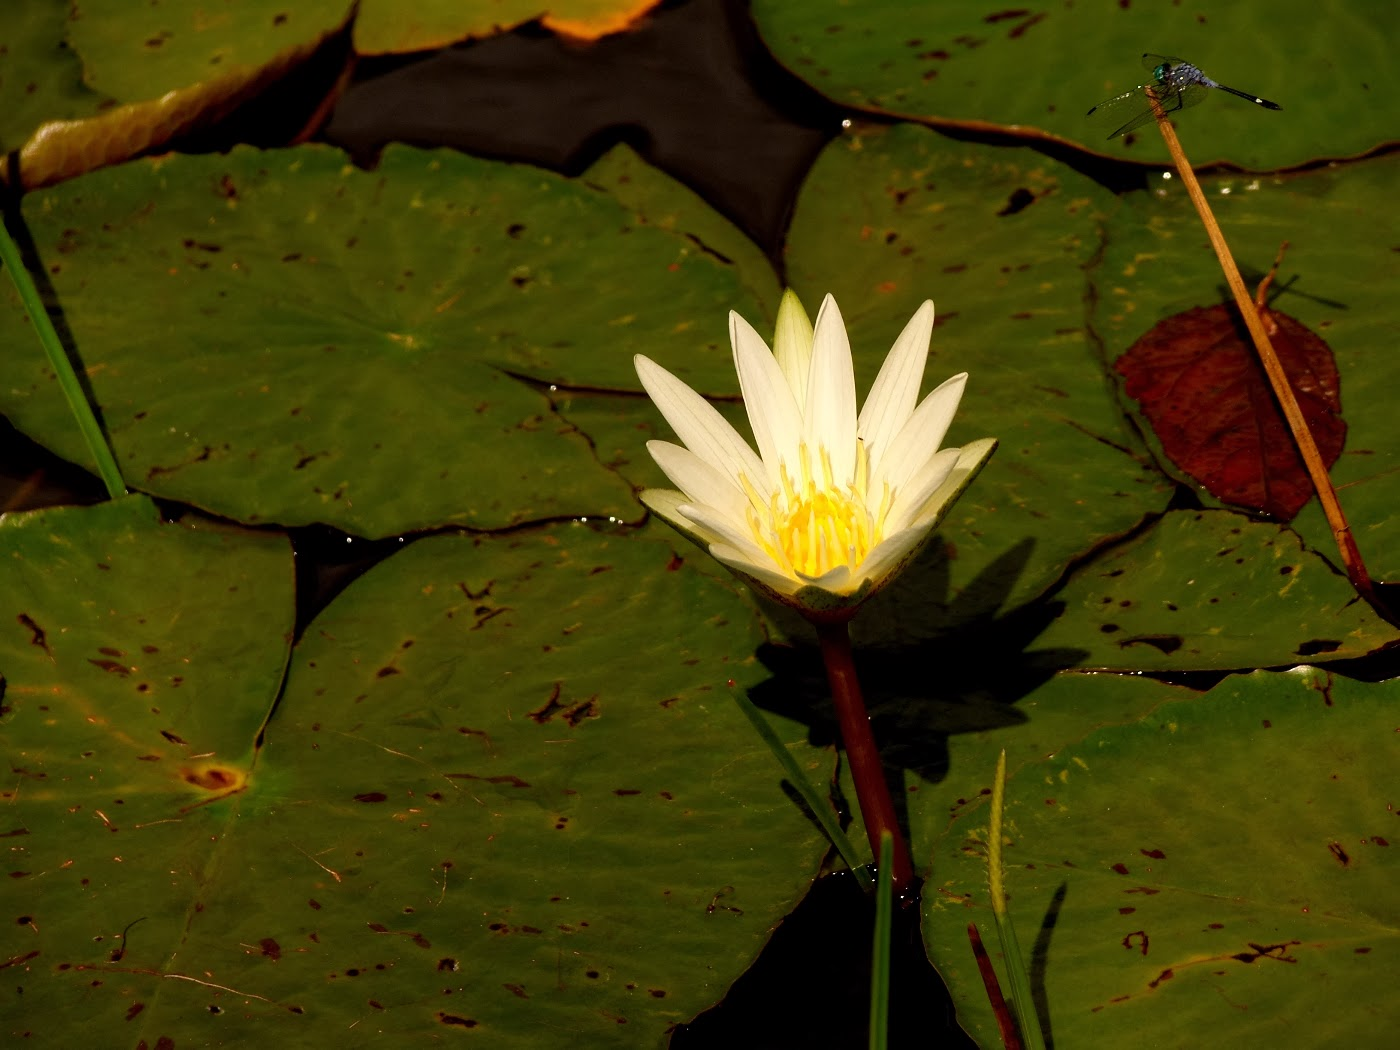 Water Lily (Nymphaeaceae) nature photography